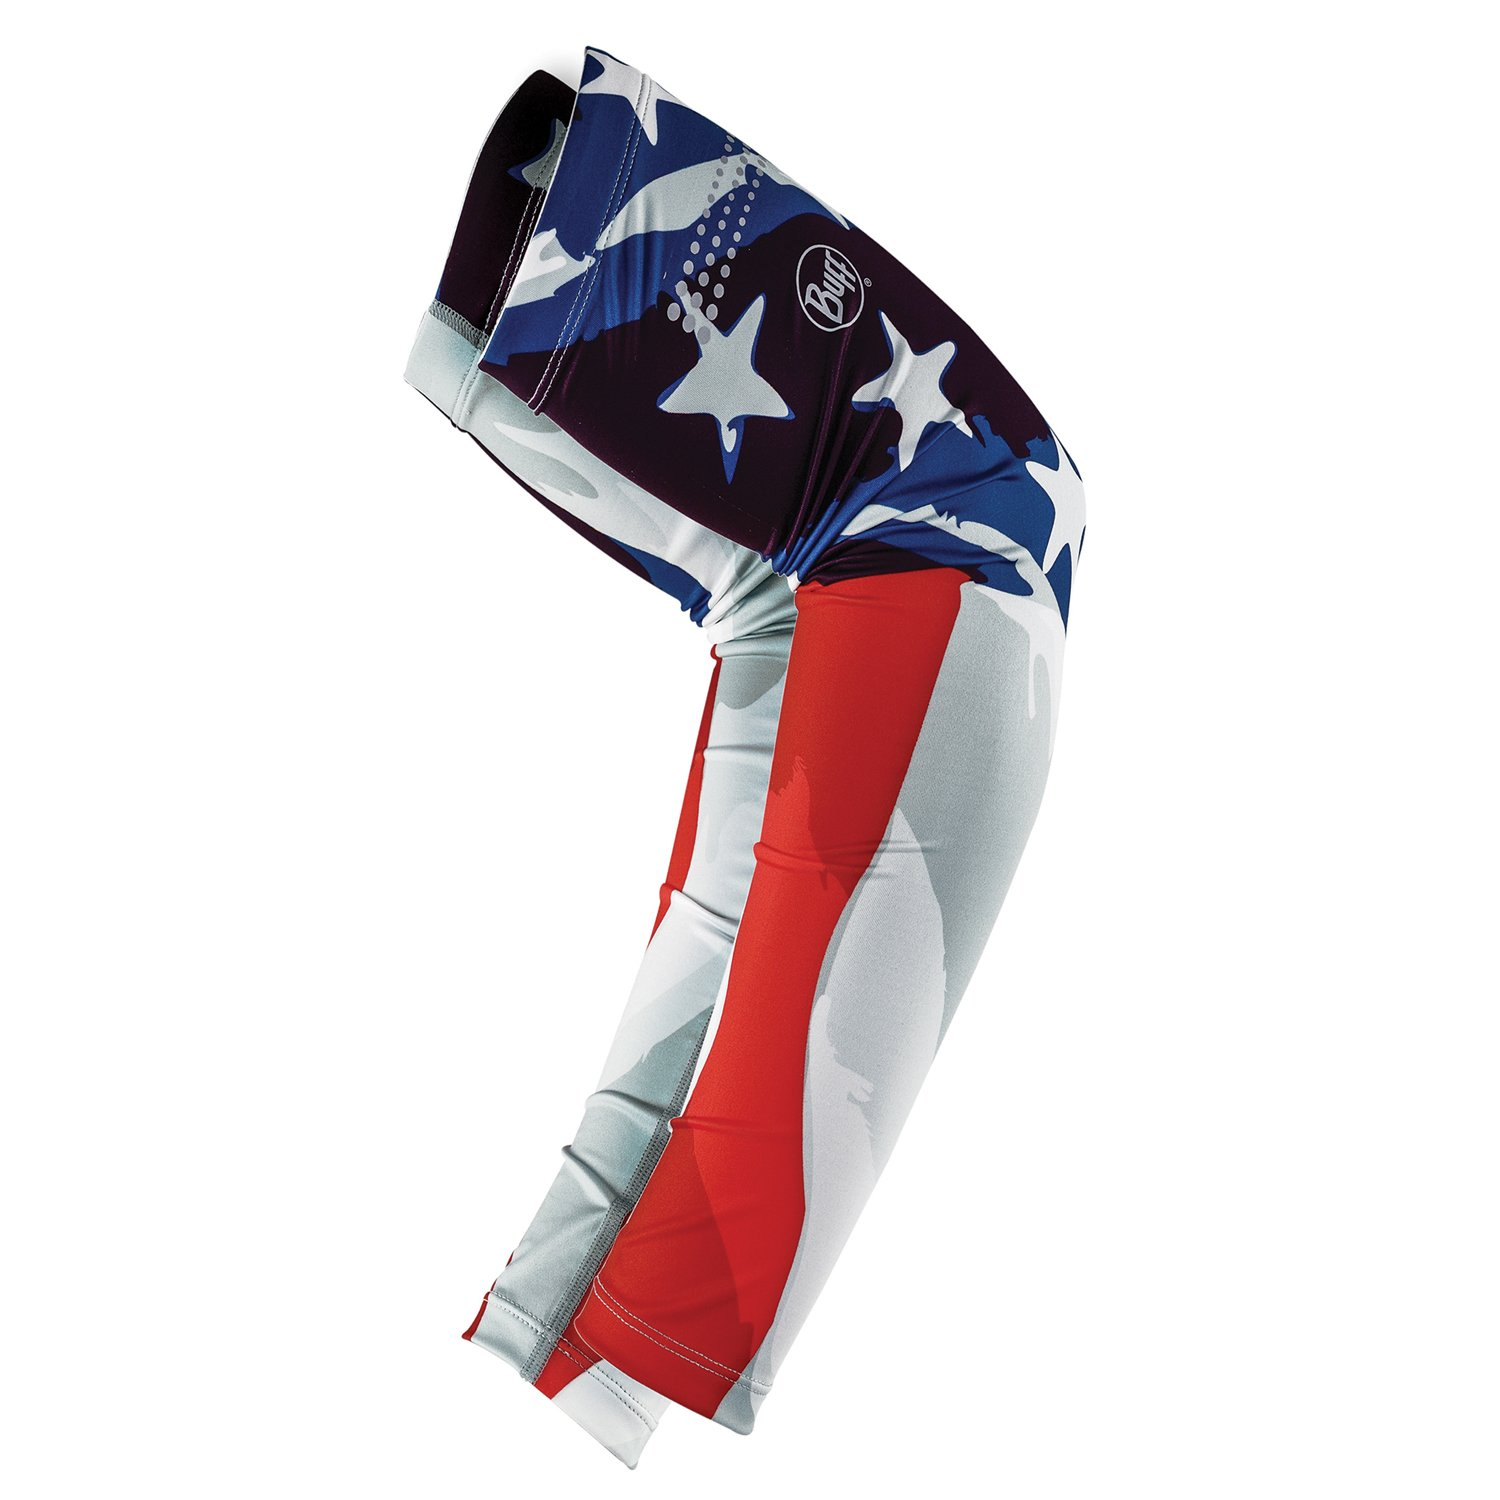 BUFF Unisex UV Arm Sleeves, America, M/L